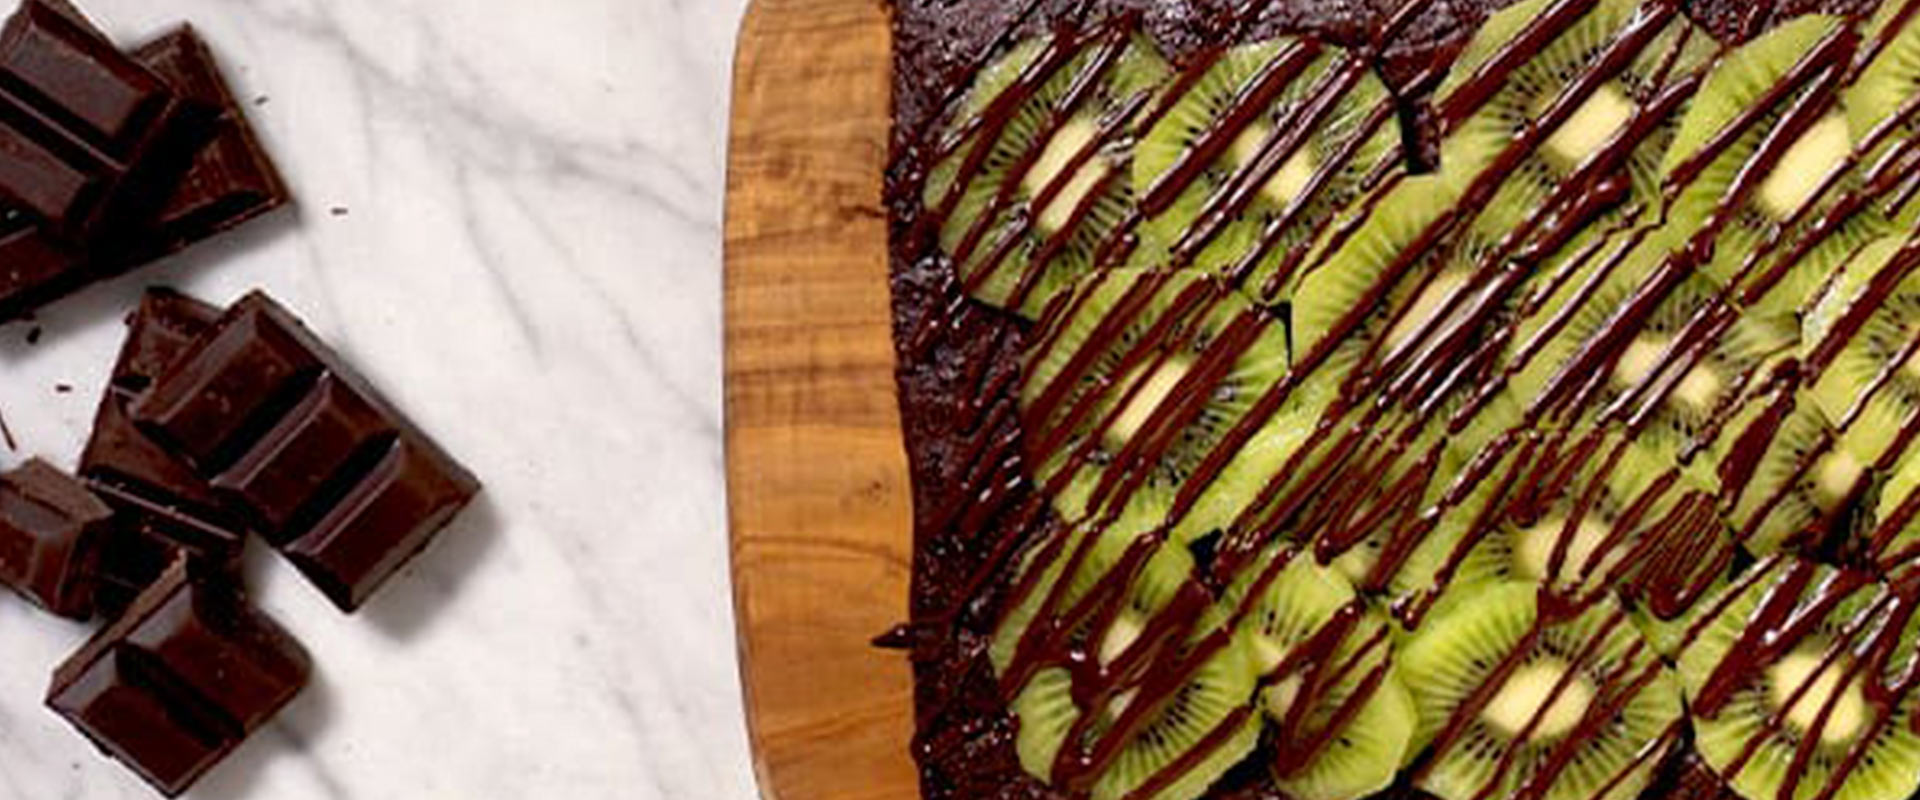 Recipe14-Light-brownie-recipe-thumbnail.jpg